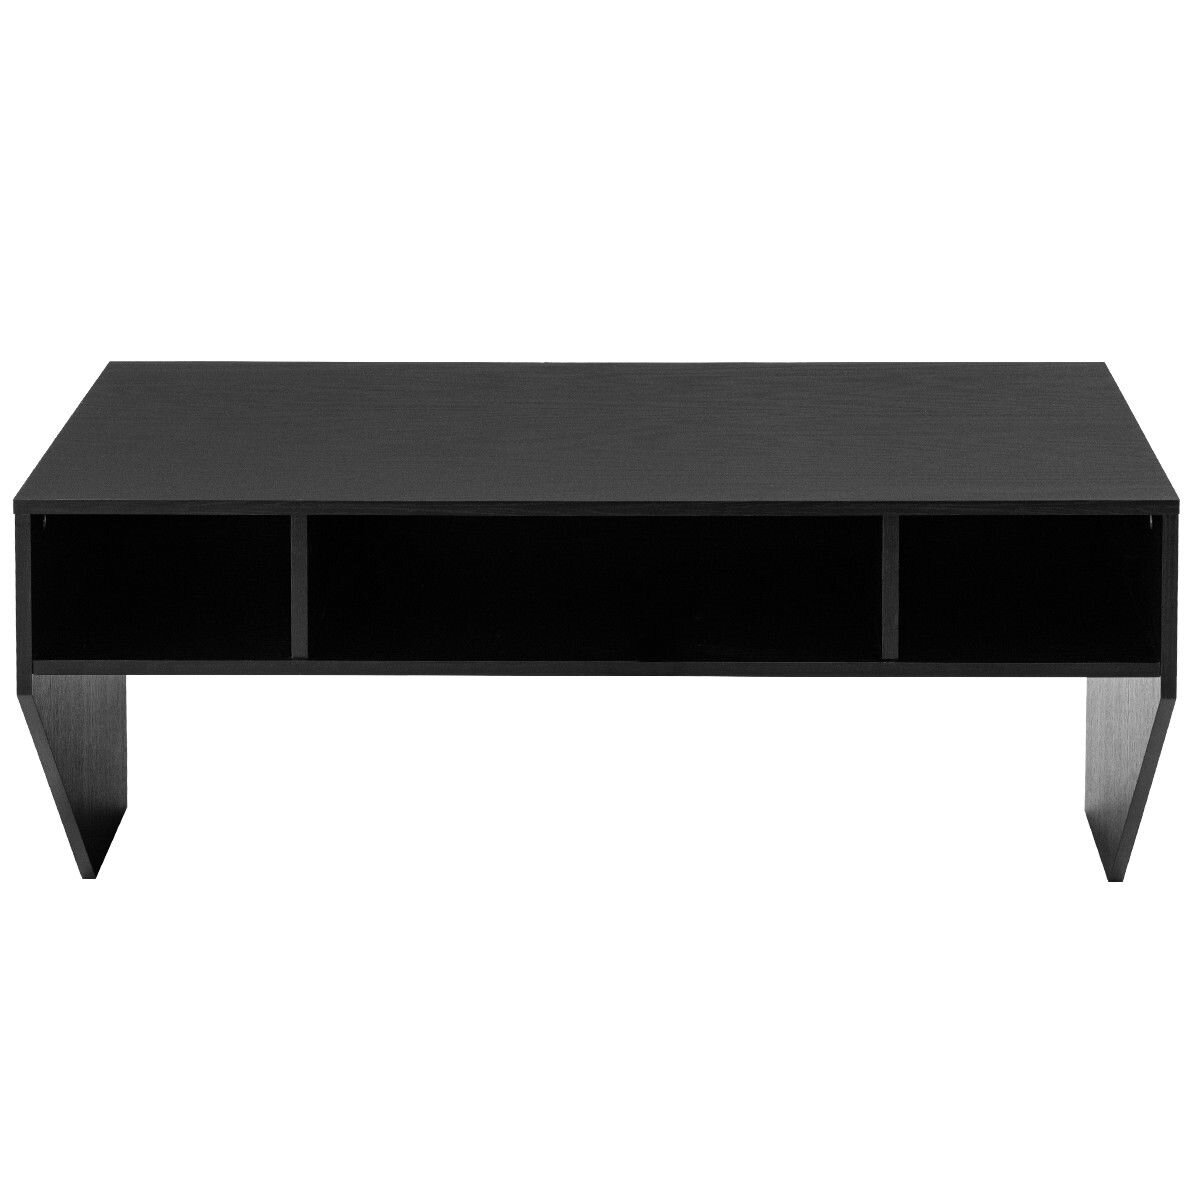 Ebern Designs Yves Wall Mounted Computer Sy Storage Floating Desk Reviews Wayfair